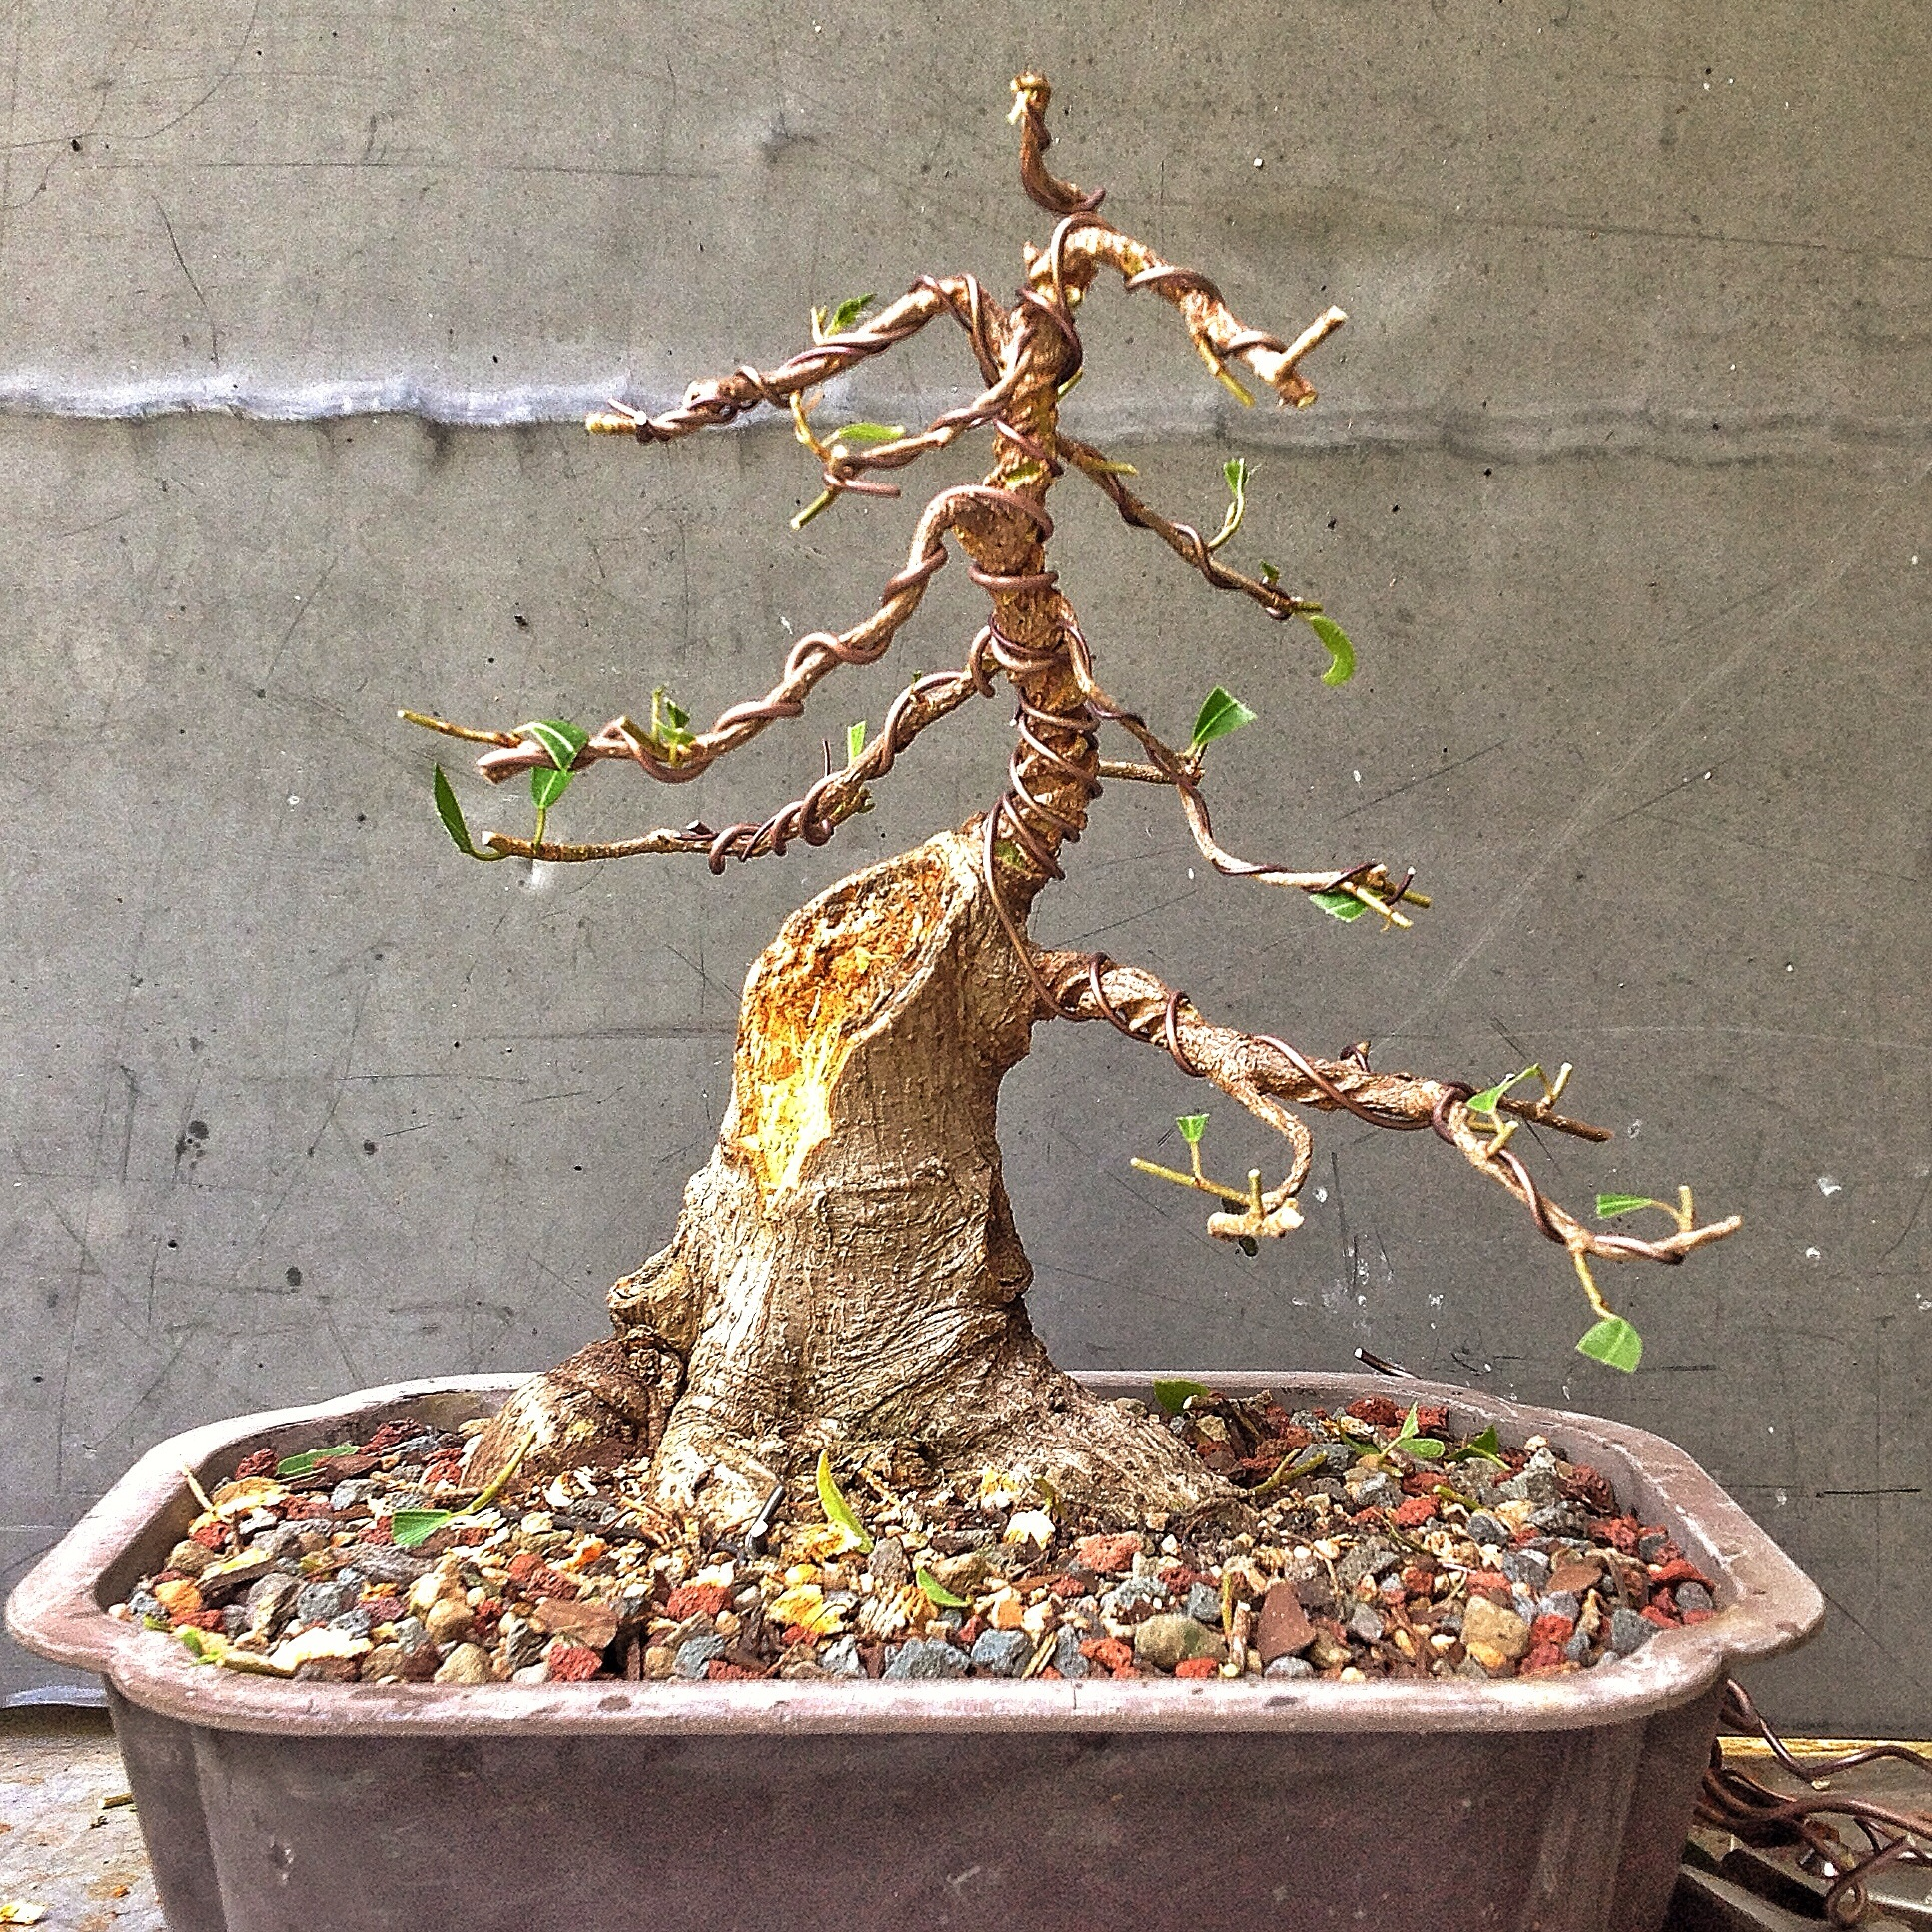 Stupendous Total Willowleaf Ficus Drama Adams Art And Bonsai Blog Wiring Digital Resources Funapmognl